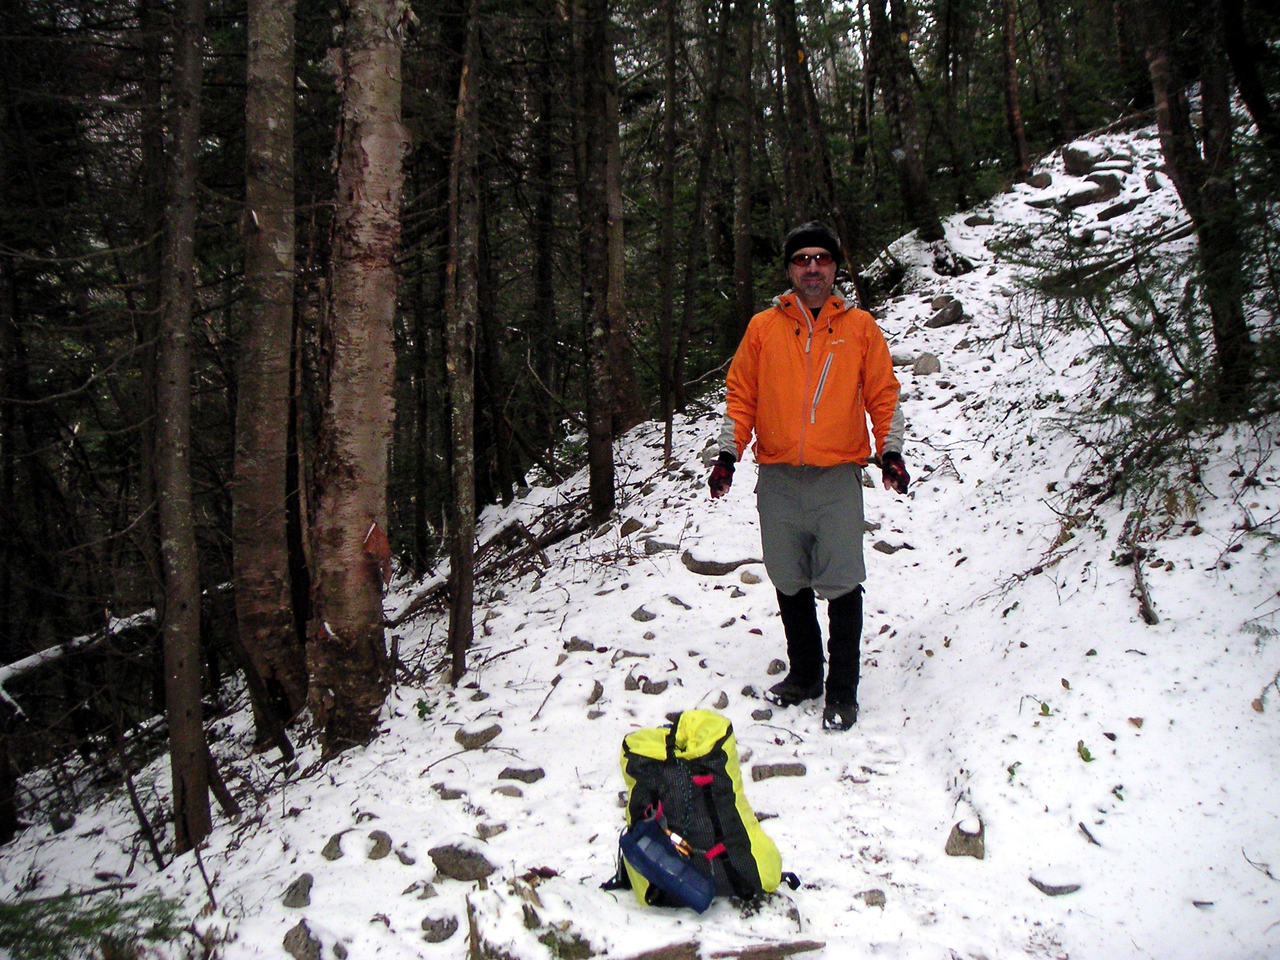 Bad news: the iced up trail was about to begin. Good news: I made the day pack